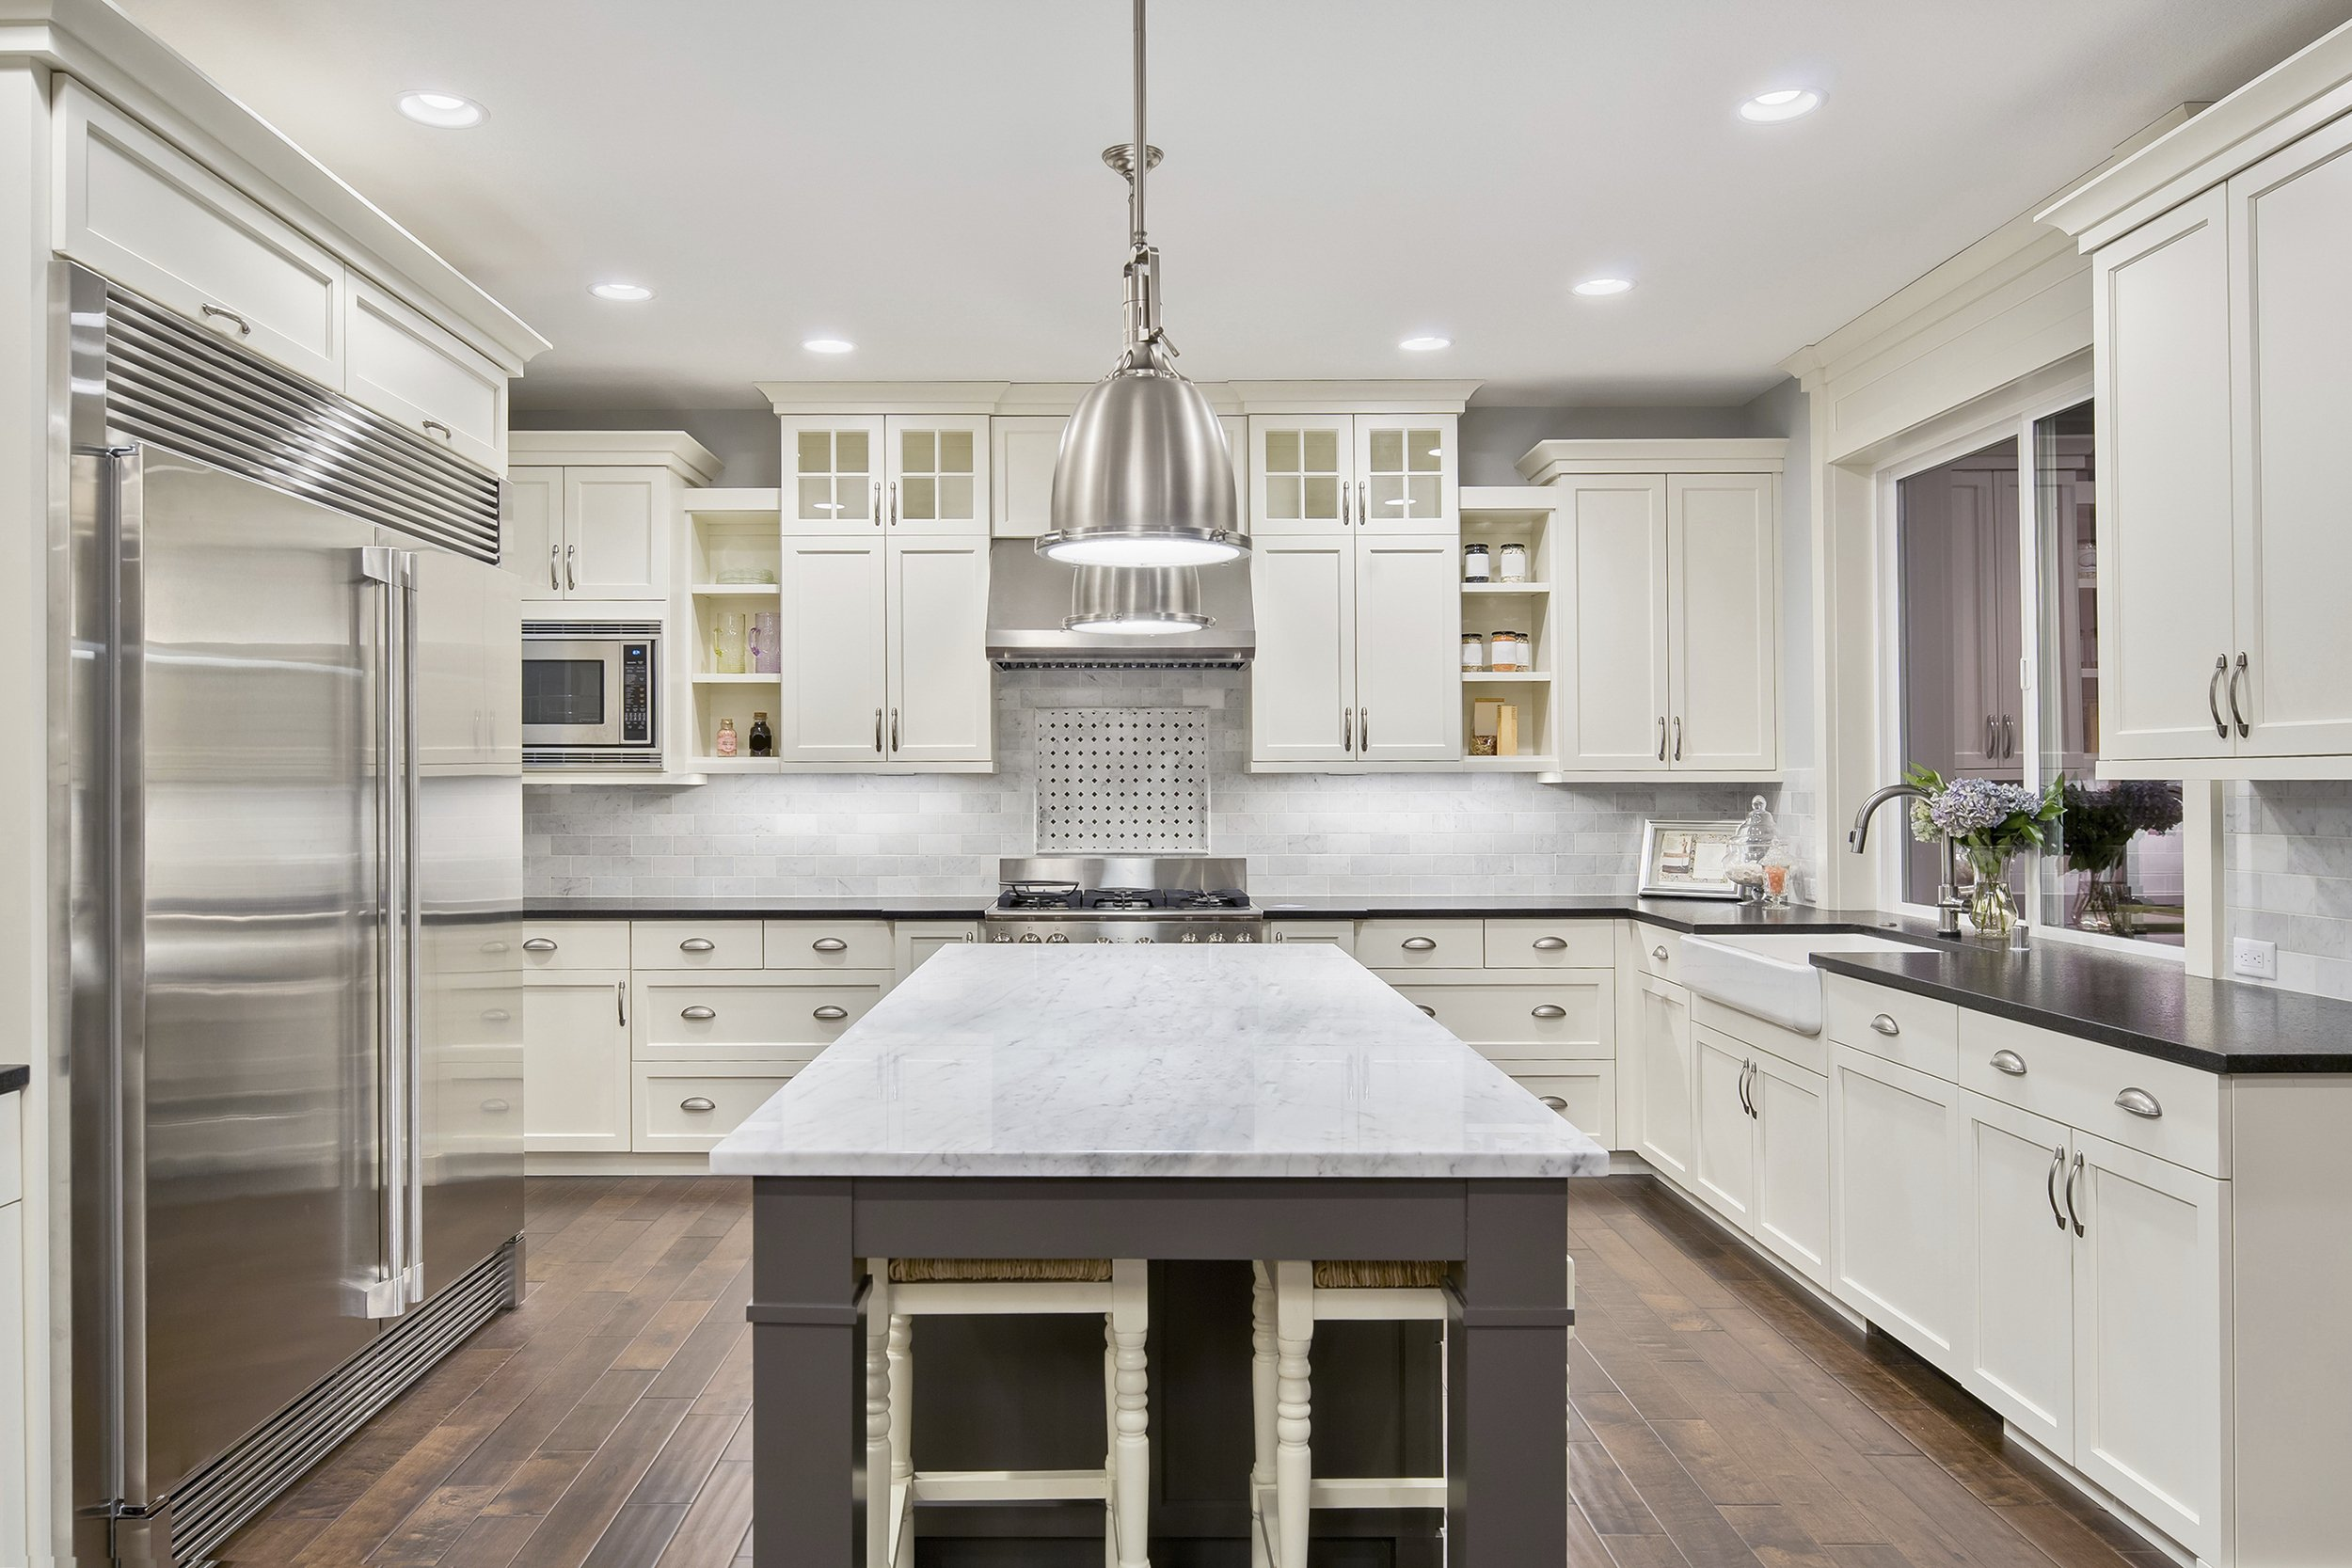 Blazek Construction Custom Kitchen Renovations In Chattanooga TN - Kitchen remodeling chattanooga tn